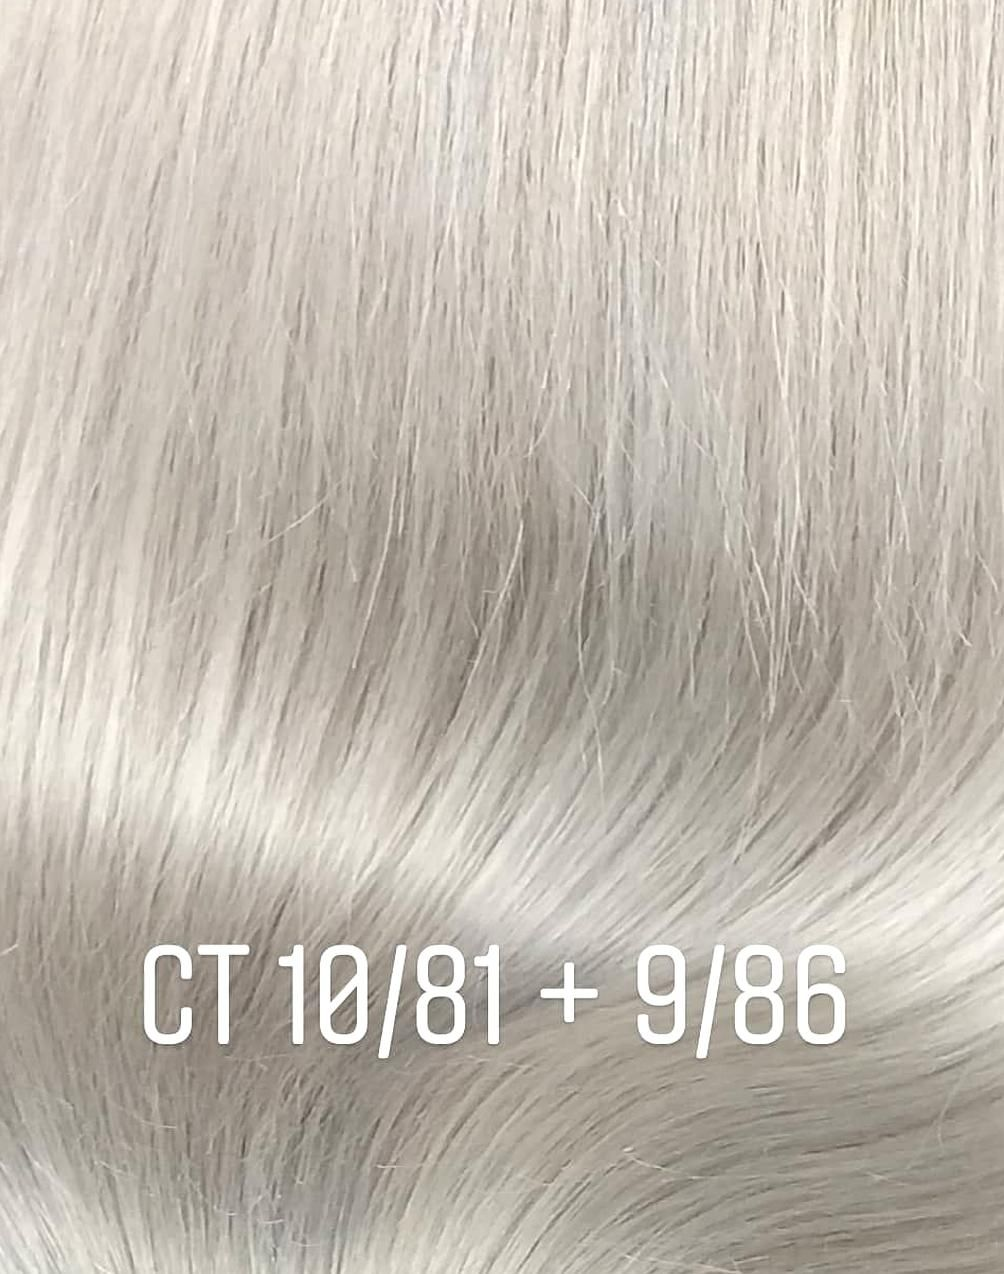 Pin By Tm On Quality Pins Hair Color Formulas Wella Hair Color Hair Color Techniques